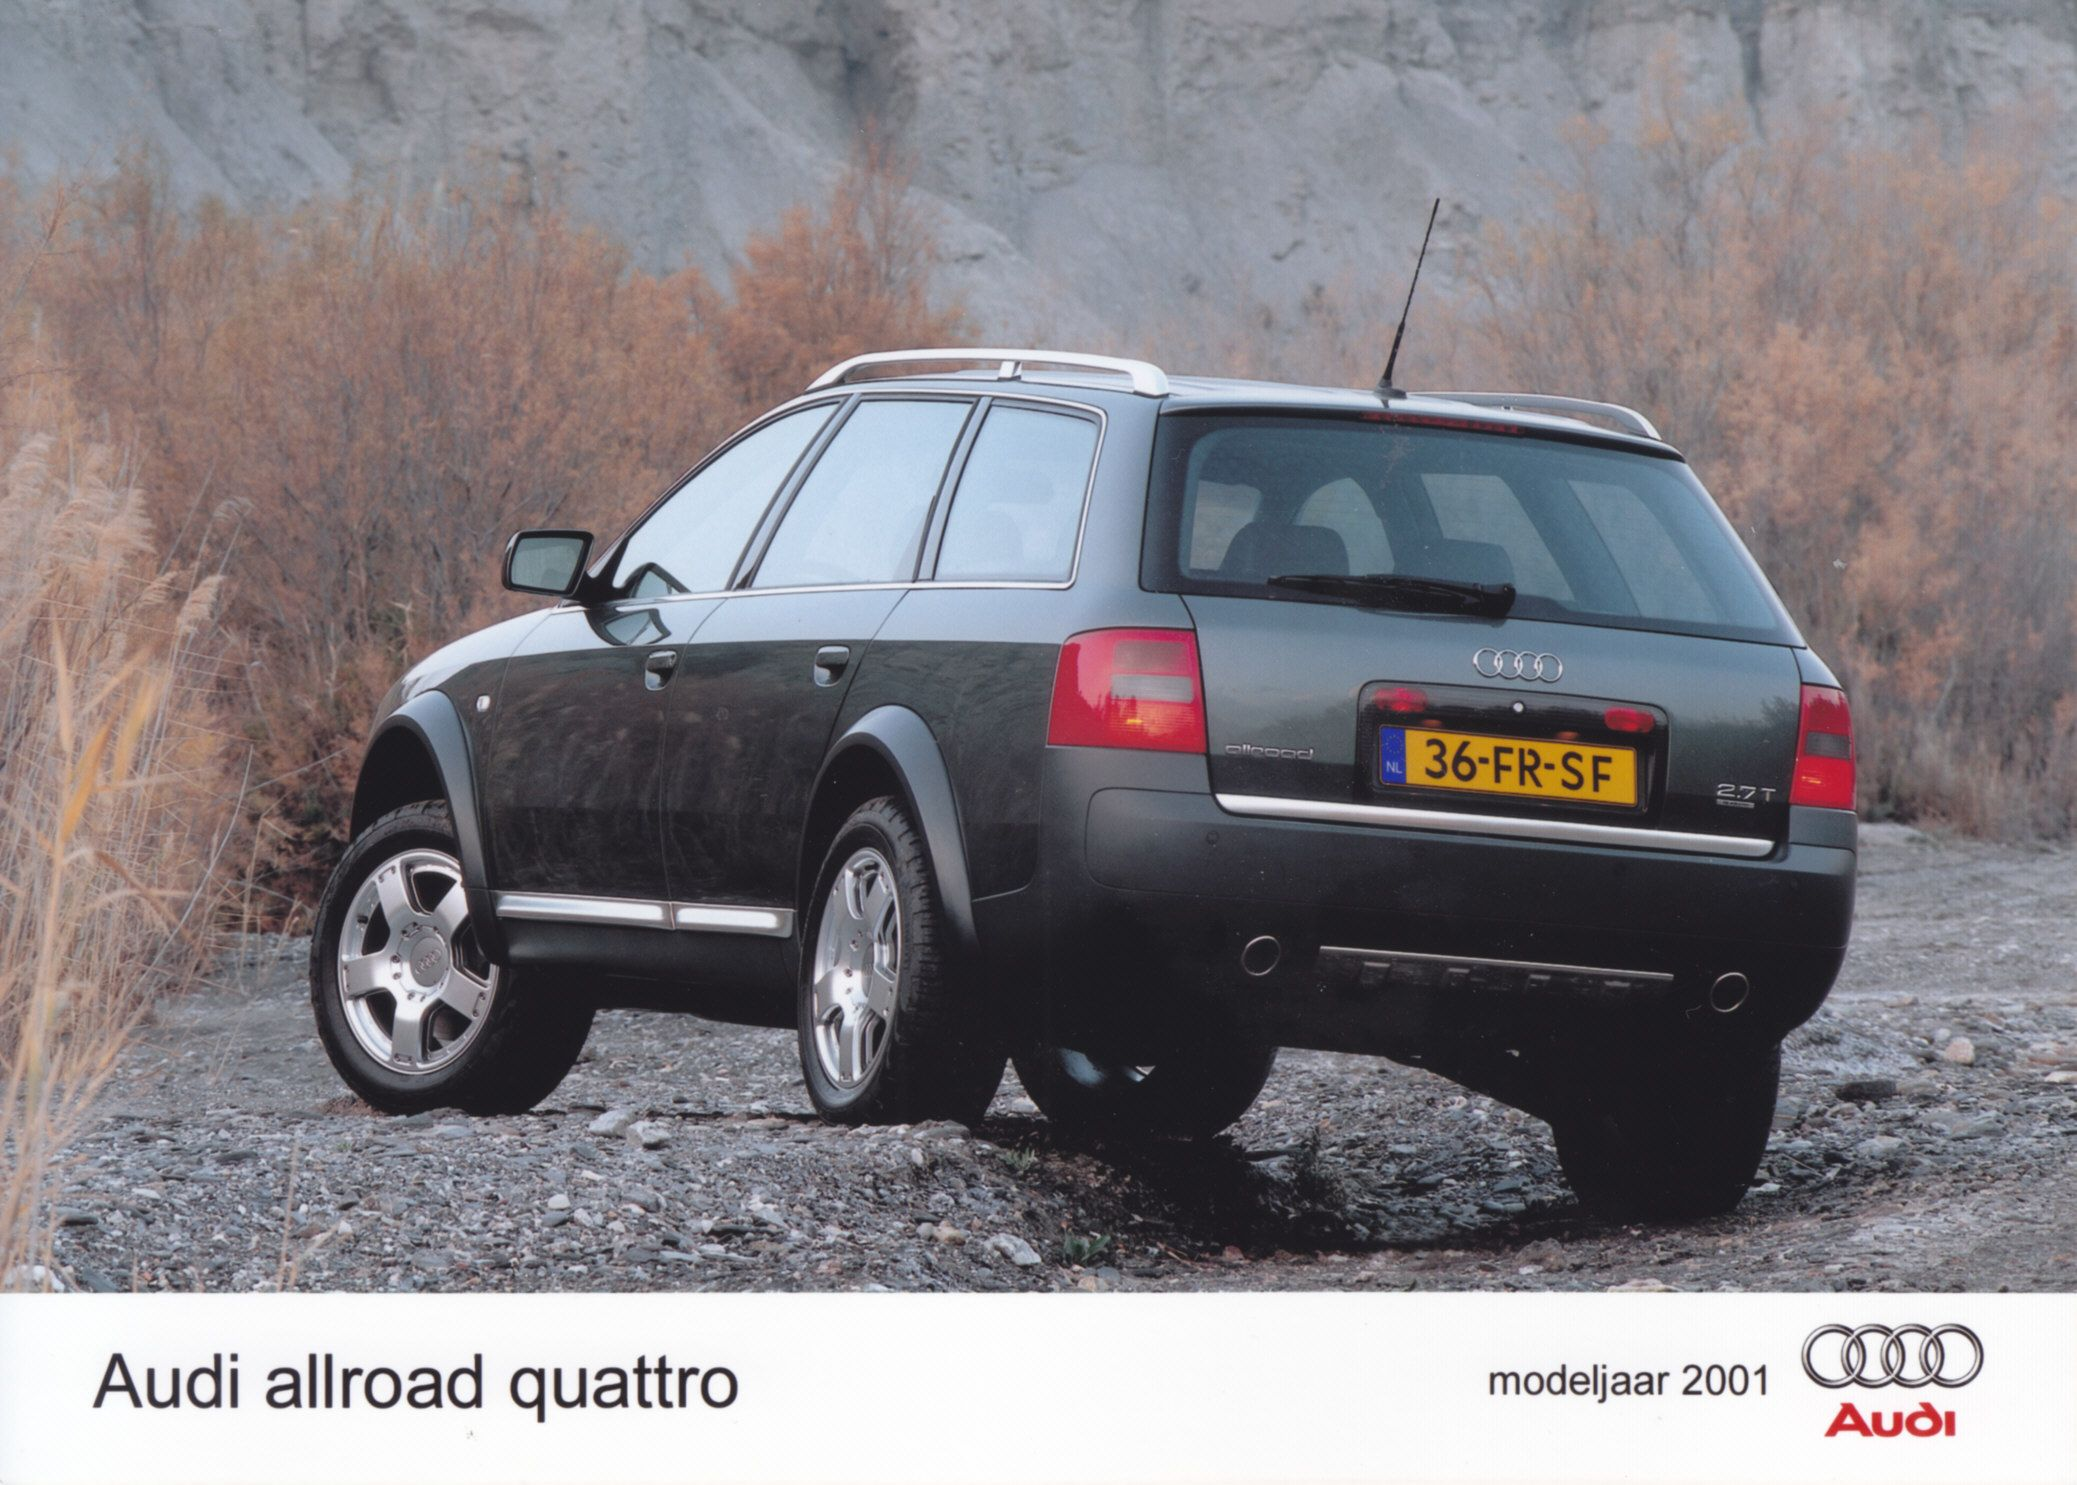 wagons motor test used new allroad for research front first side advancing reviews argument cars models audi view more trend the